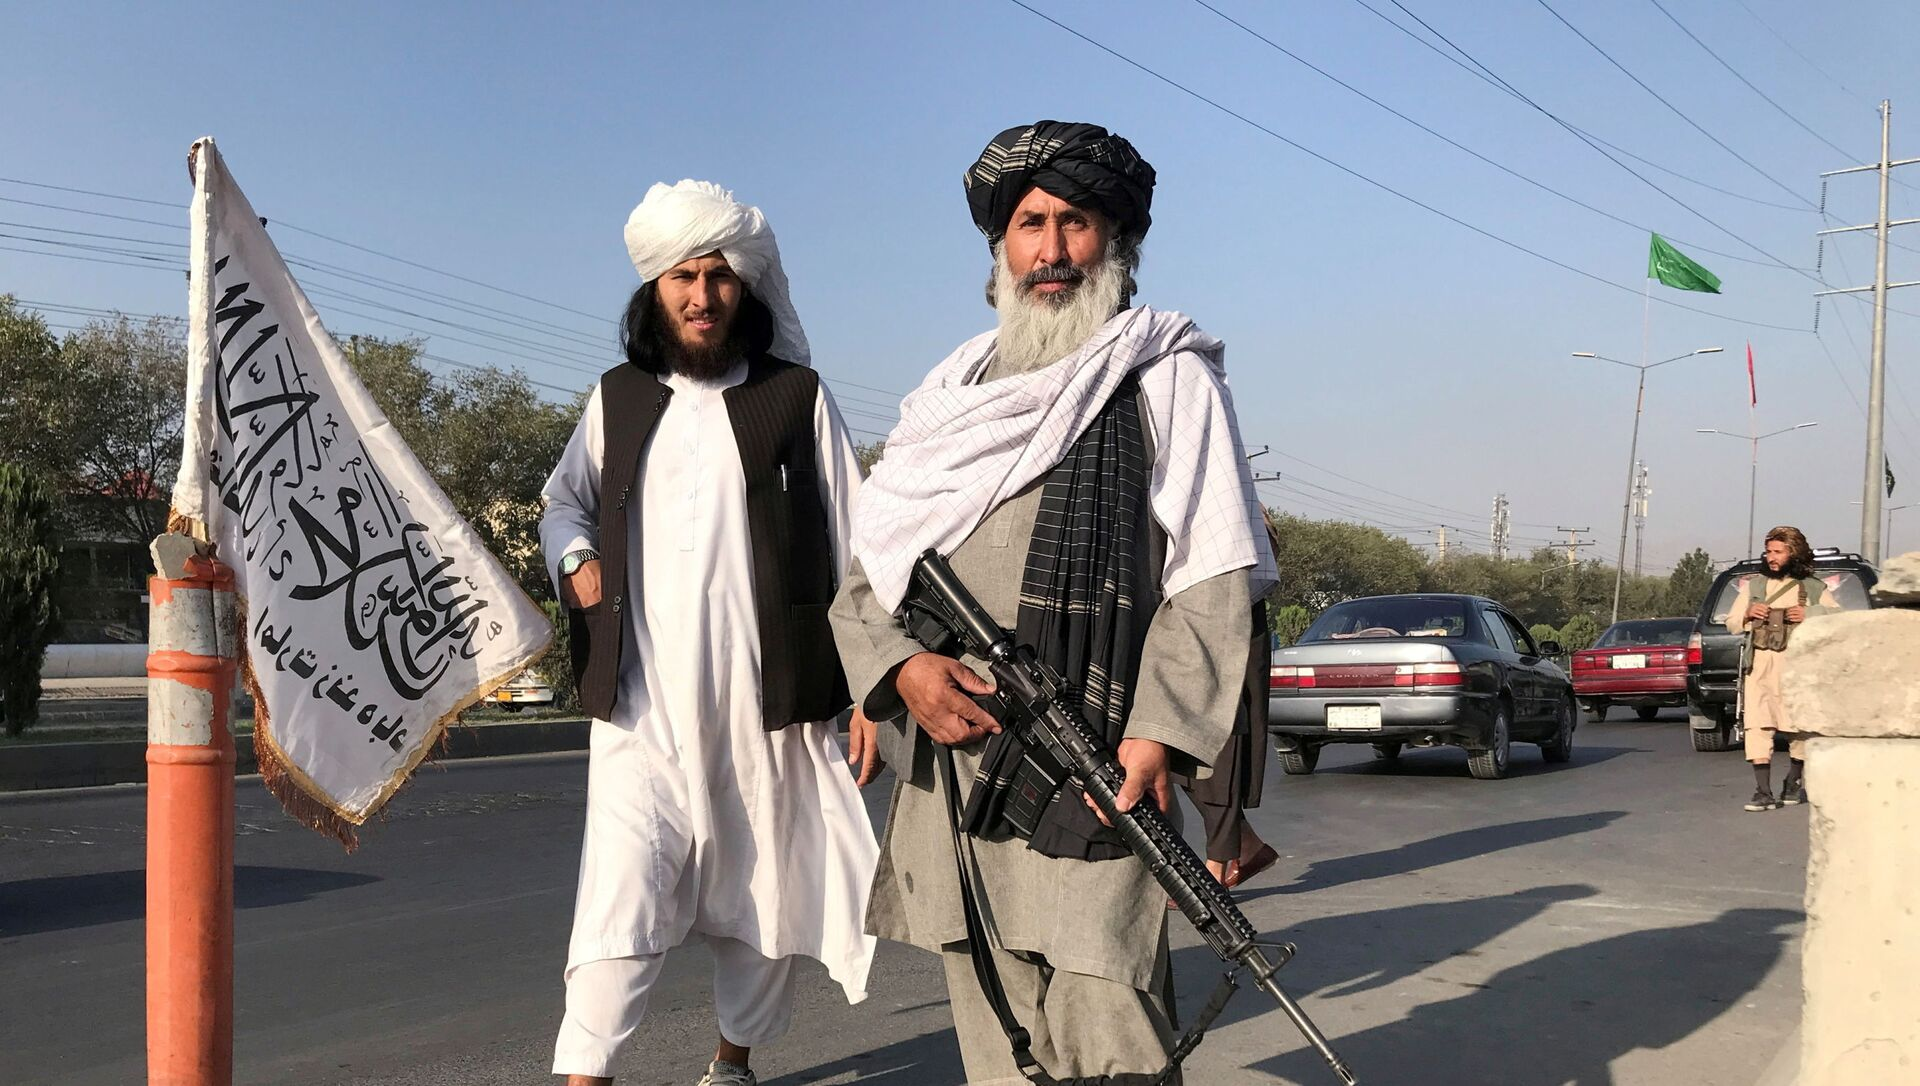 FILE PHOTO: A Taliban fighter holding an M16 assault rifle stands outside the Interior Ministry in Kabul, Afghanistan, 16 August 2021. - Sputnik International, 1920, 21.08.2021